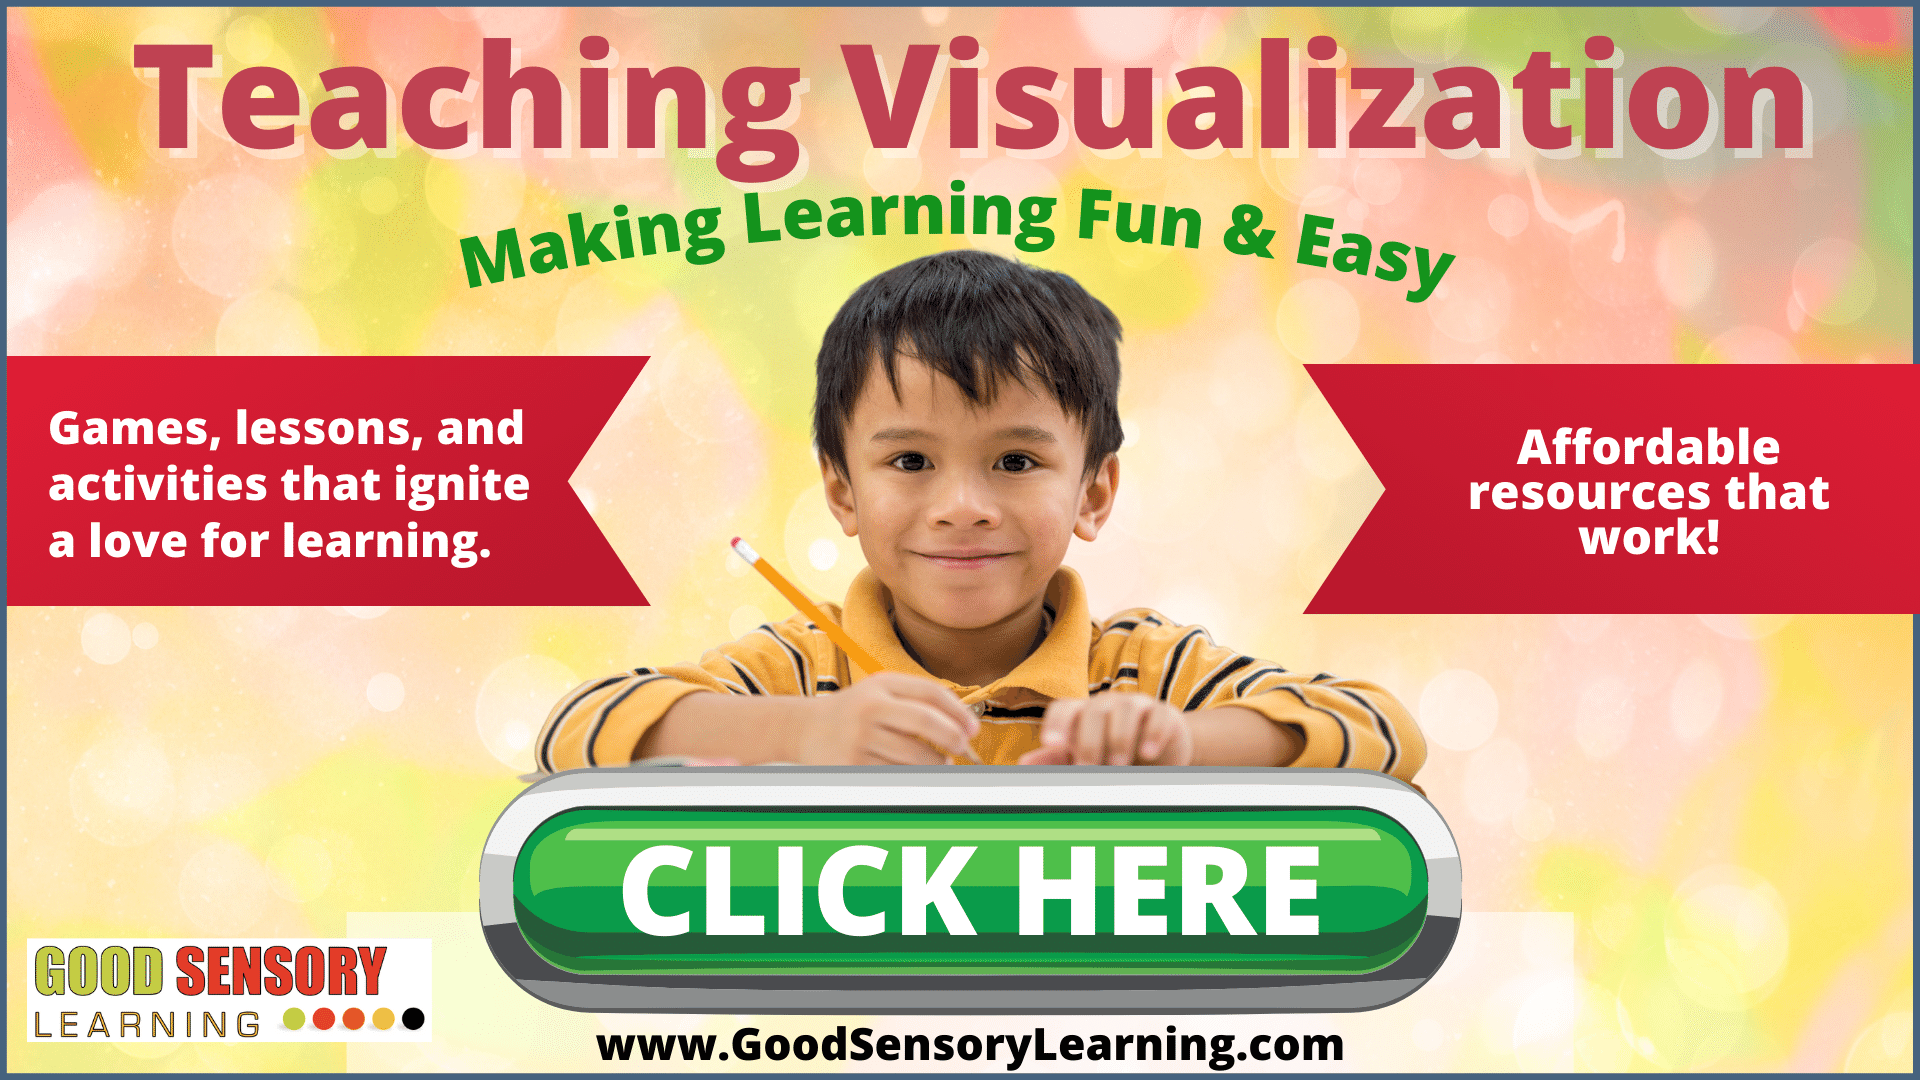 student learning to visualize